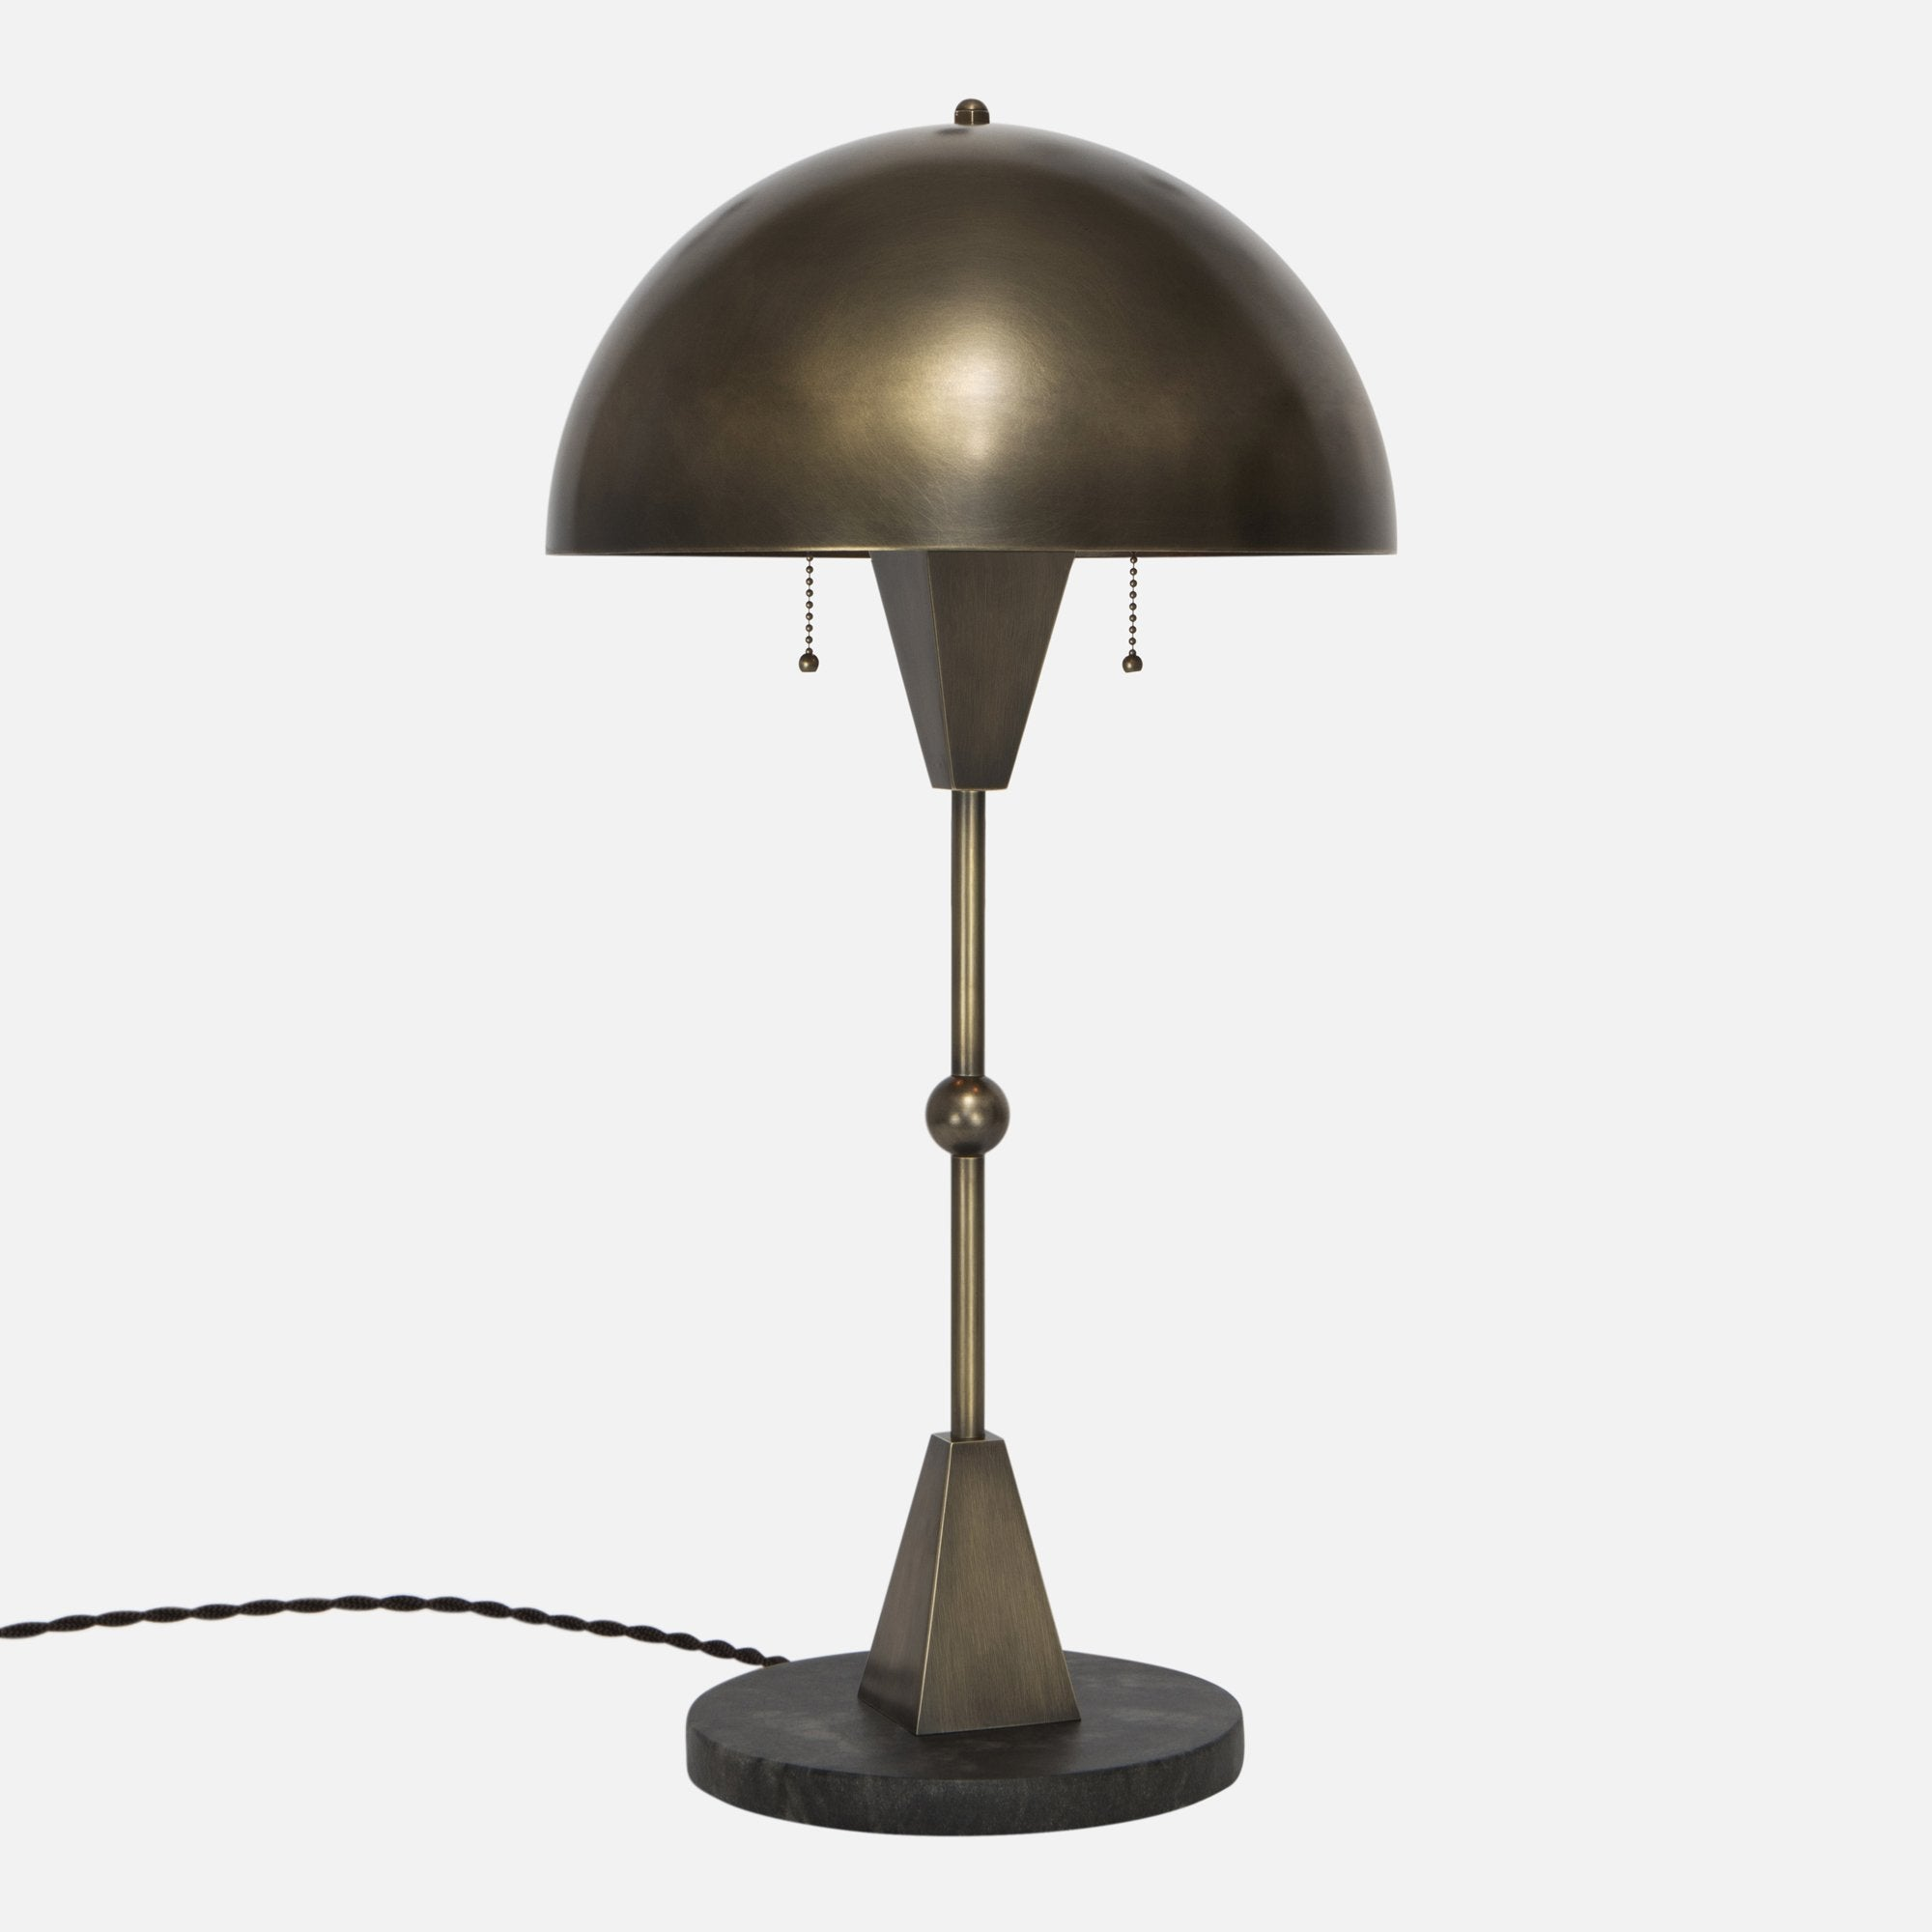 we recommend the use of table lamps or floor lamps for quick and easy access.